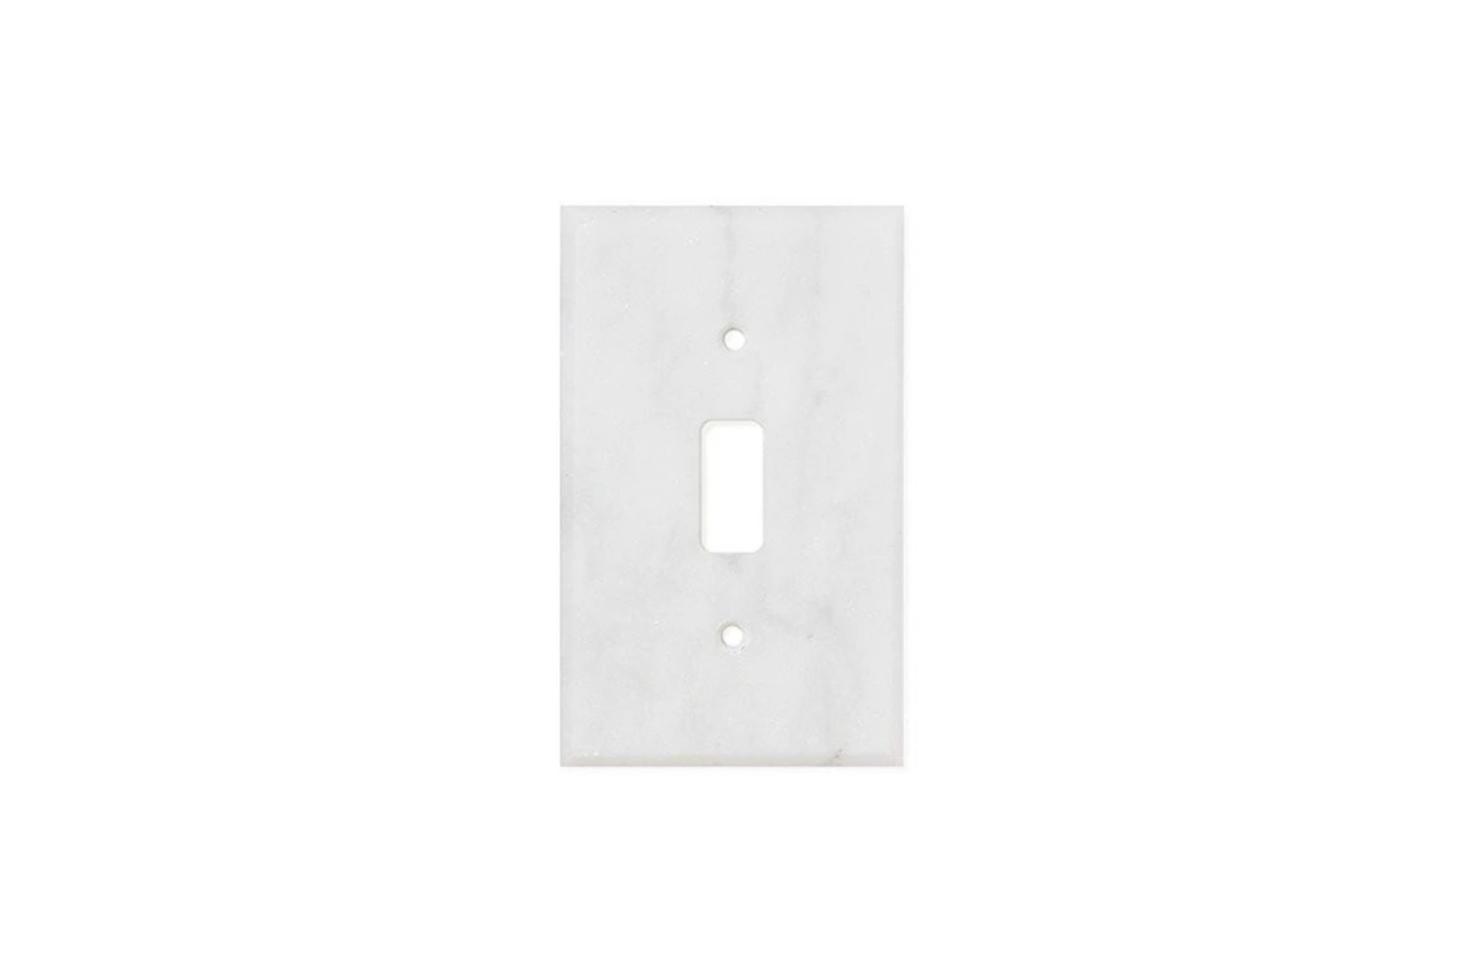 10 Easy Pieces: Switch Plate Covers